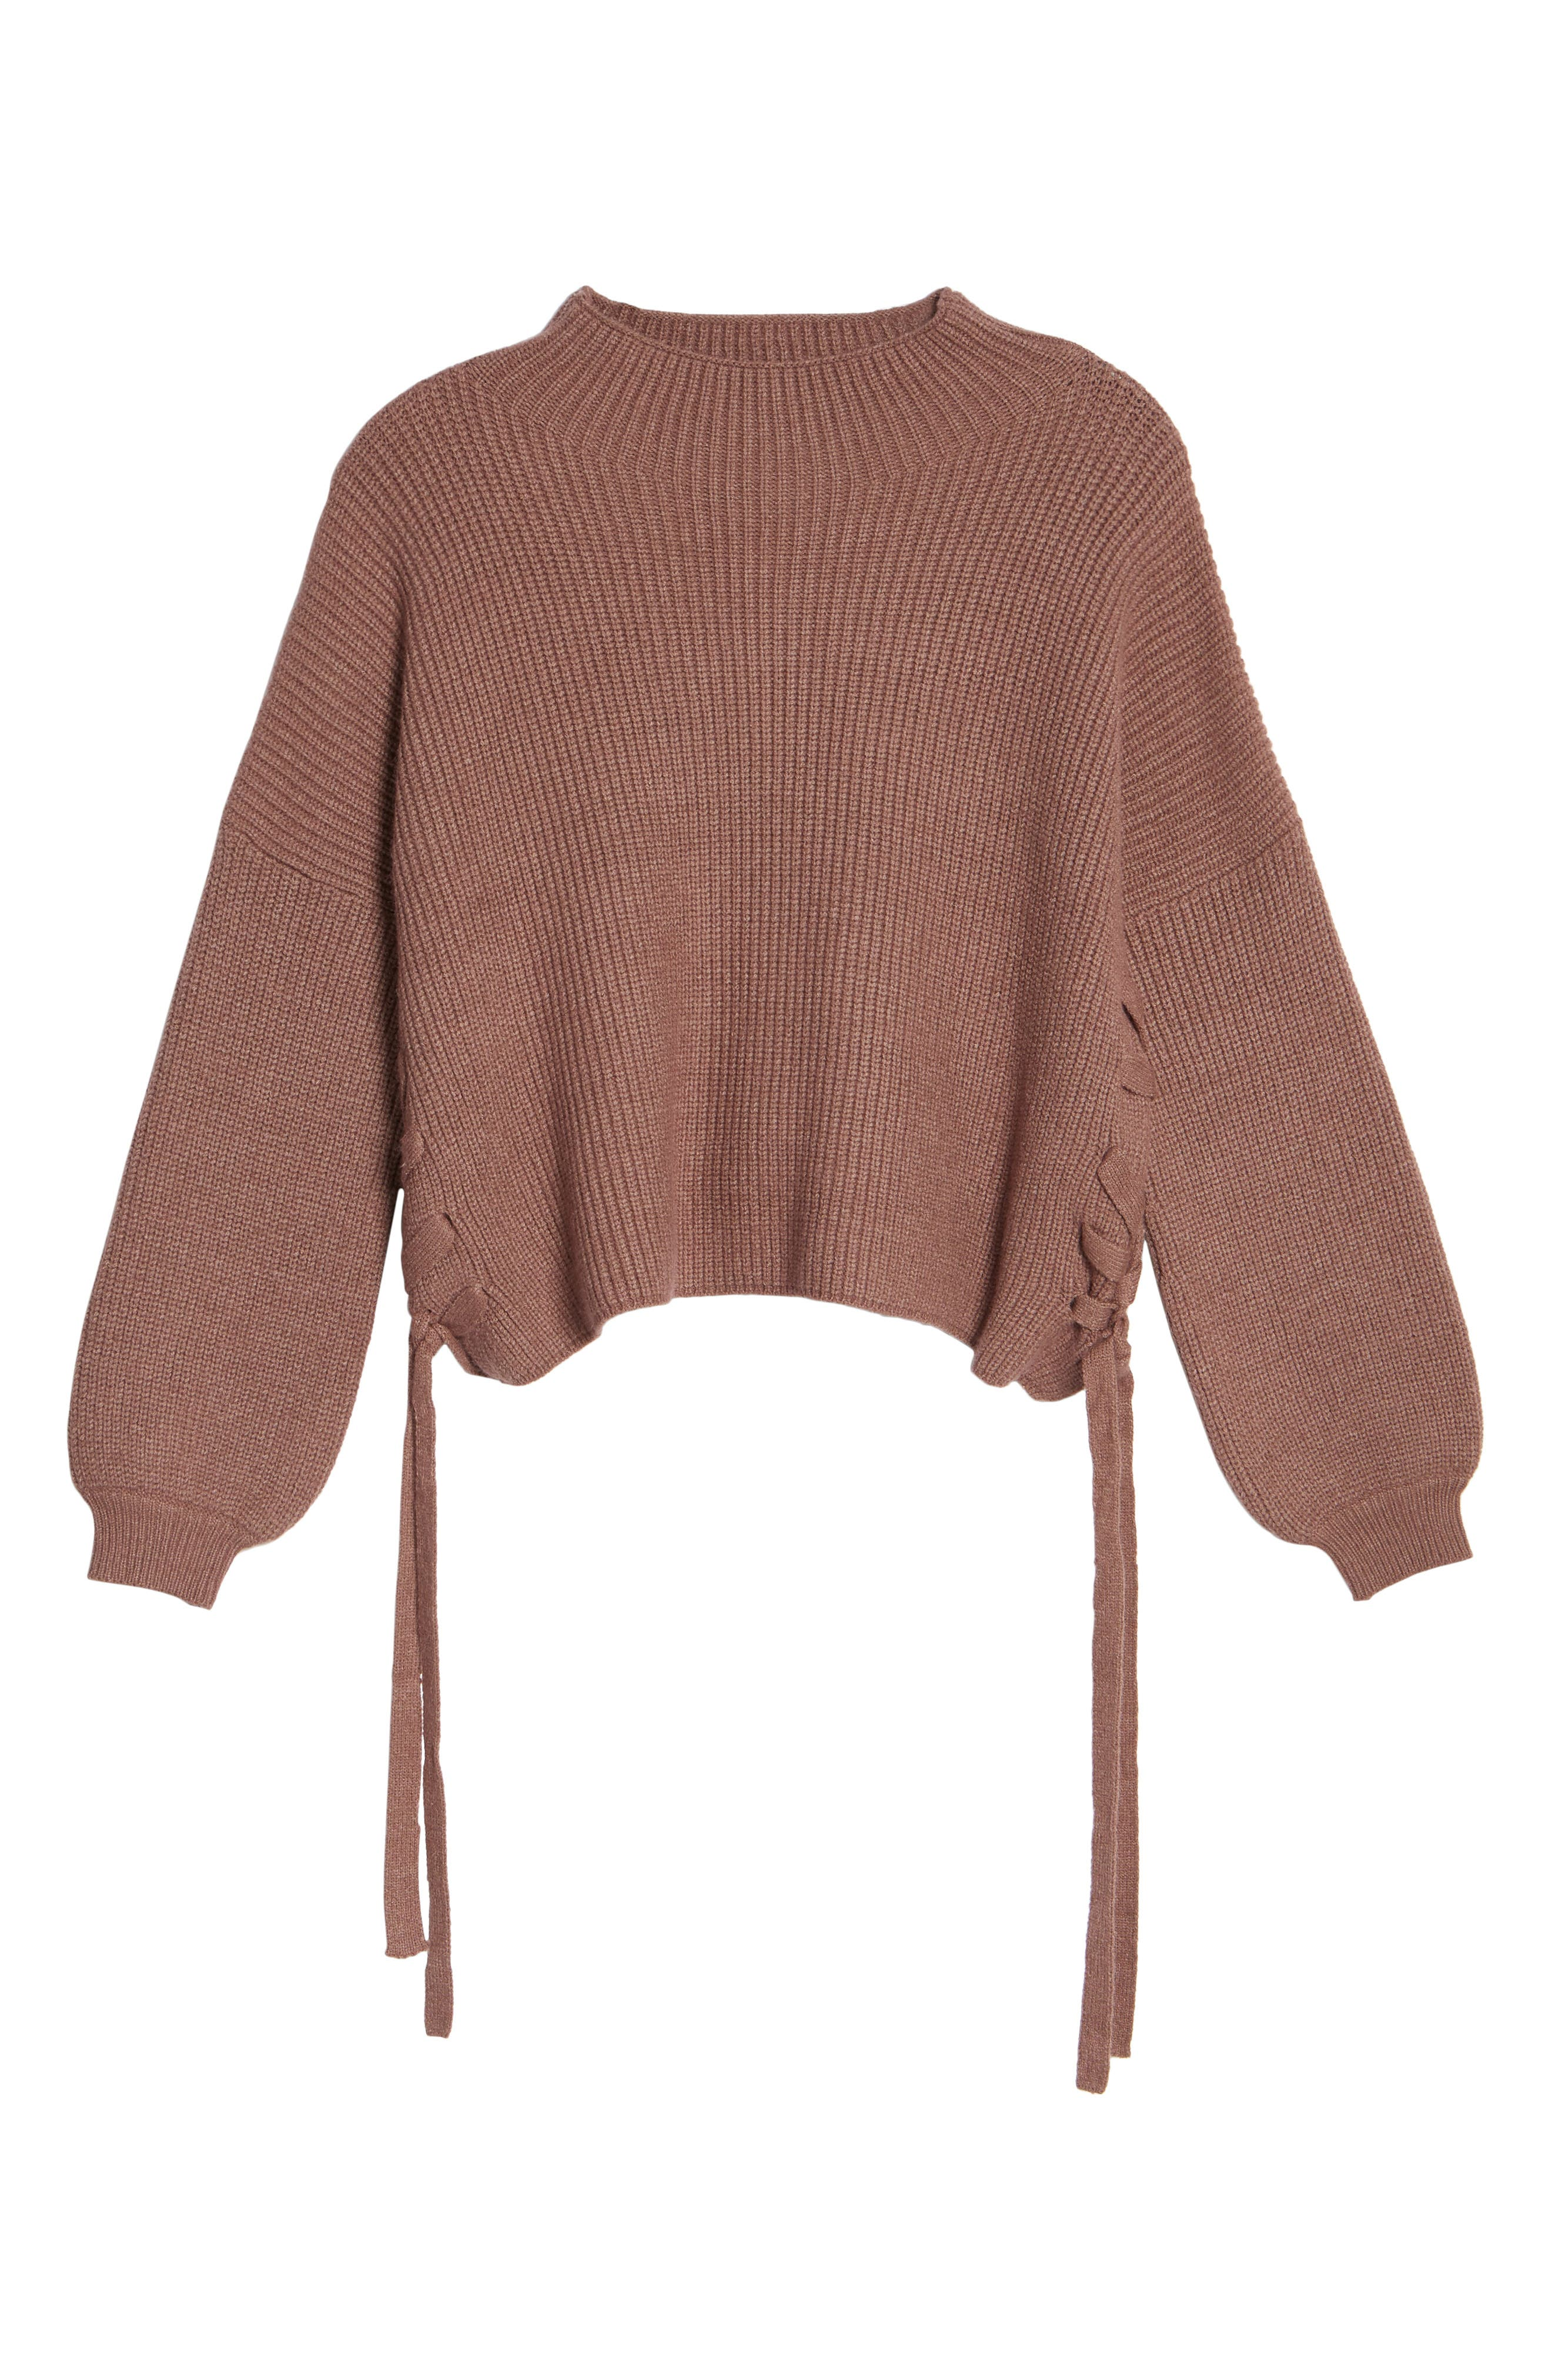 Lace-Up Sweater,                             Alternate thumbnail 6, color,                             530